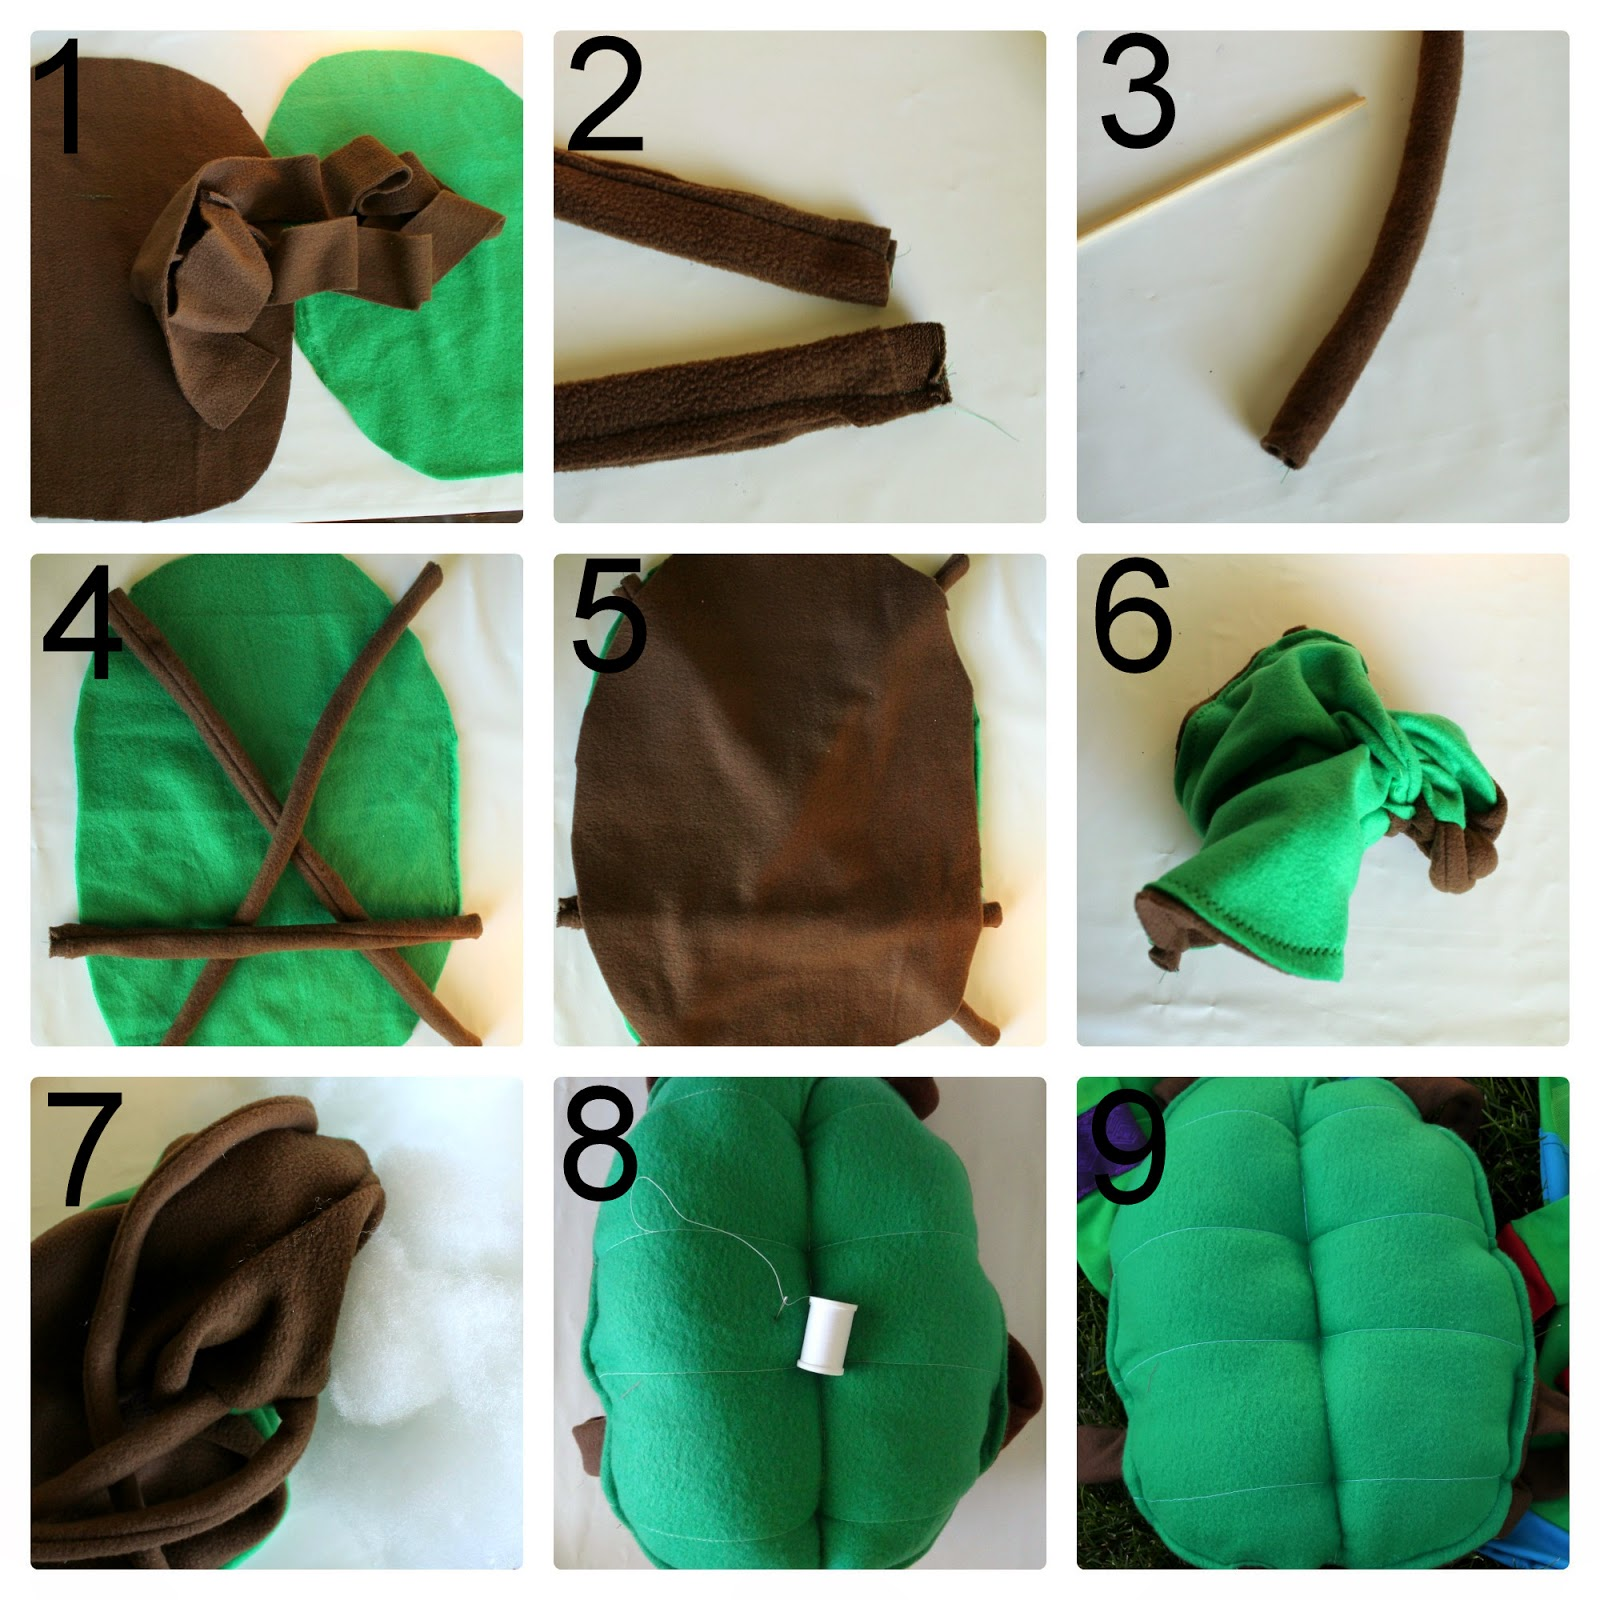 TMNT Shell Tutorial from GYCT Designs